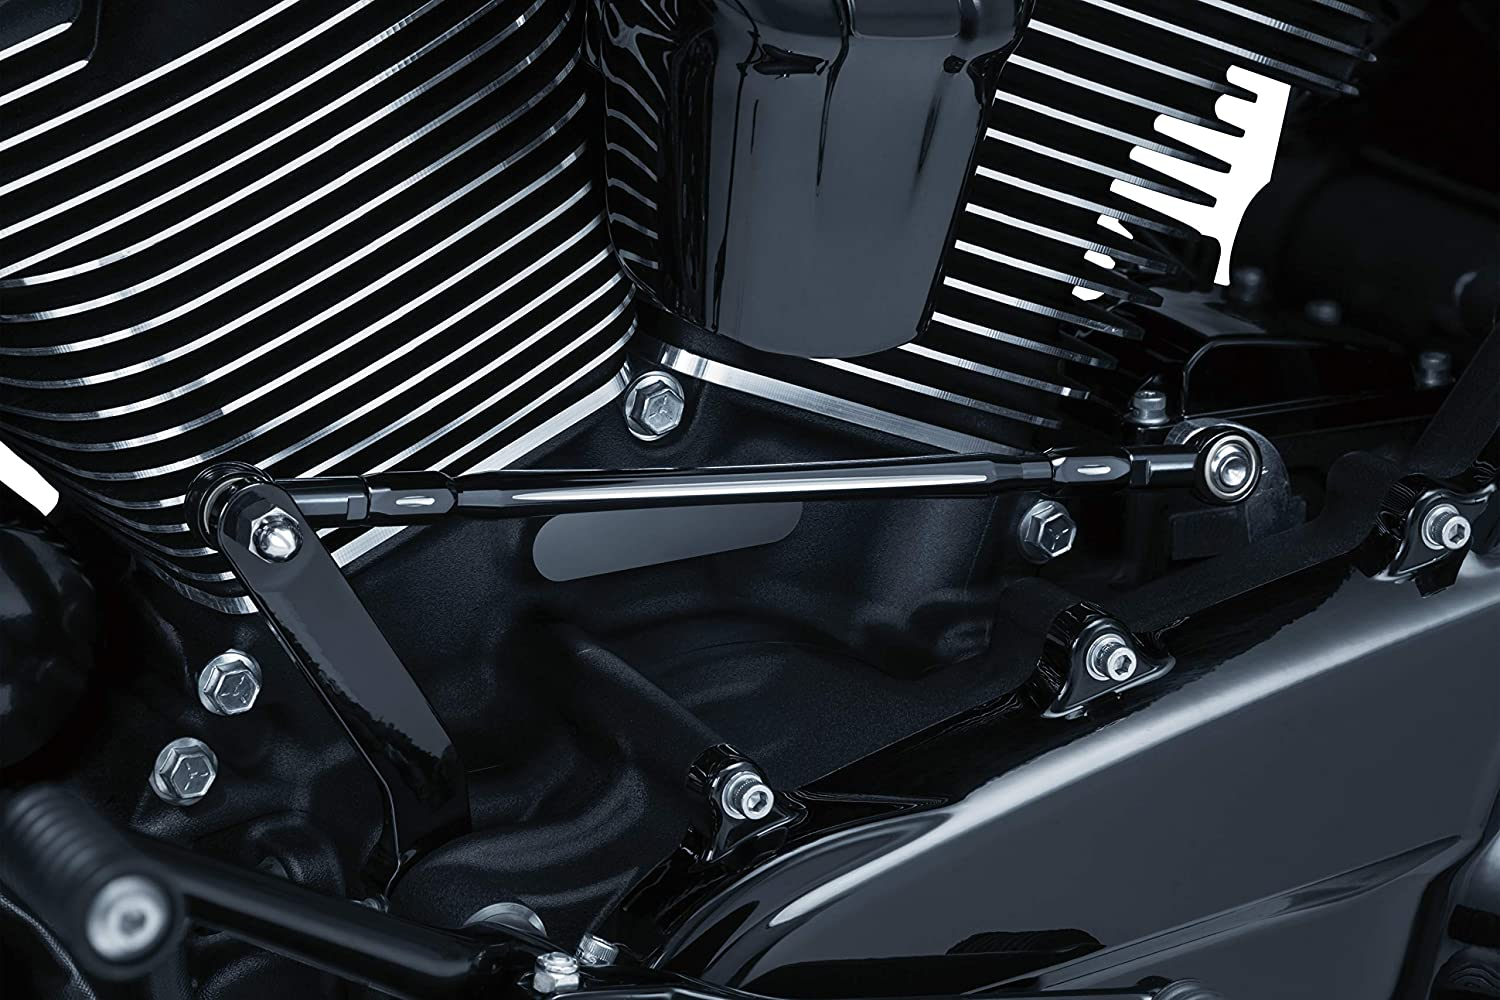 Kuryakyn 9678 Motorcycle Component Gloss Black Carved Shift Linkage for 1980-2019 Harley-Davidson Motorcycles